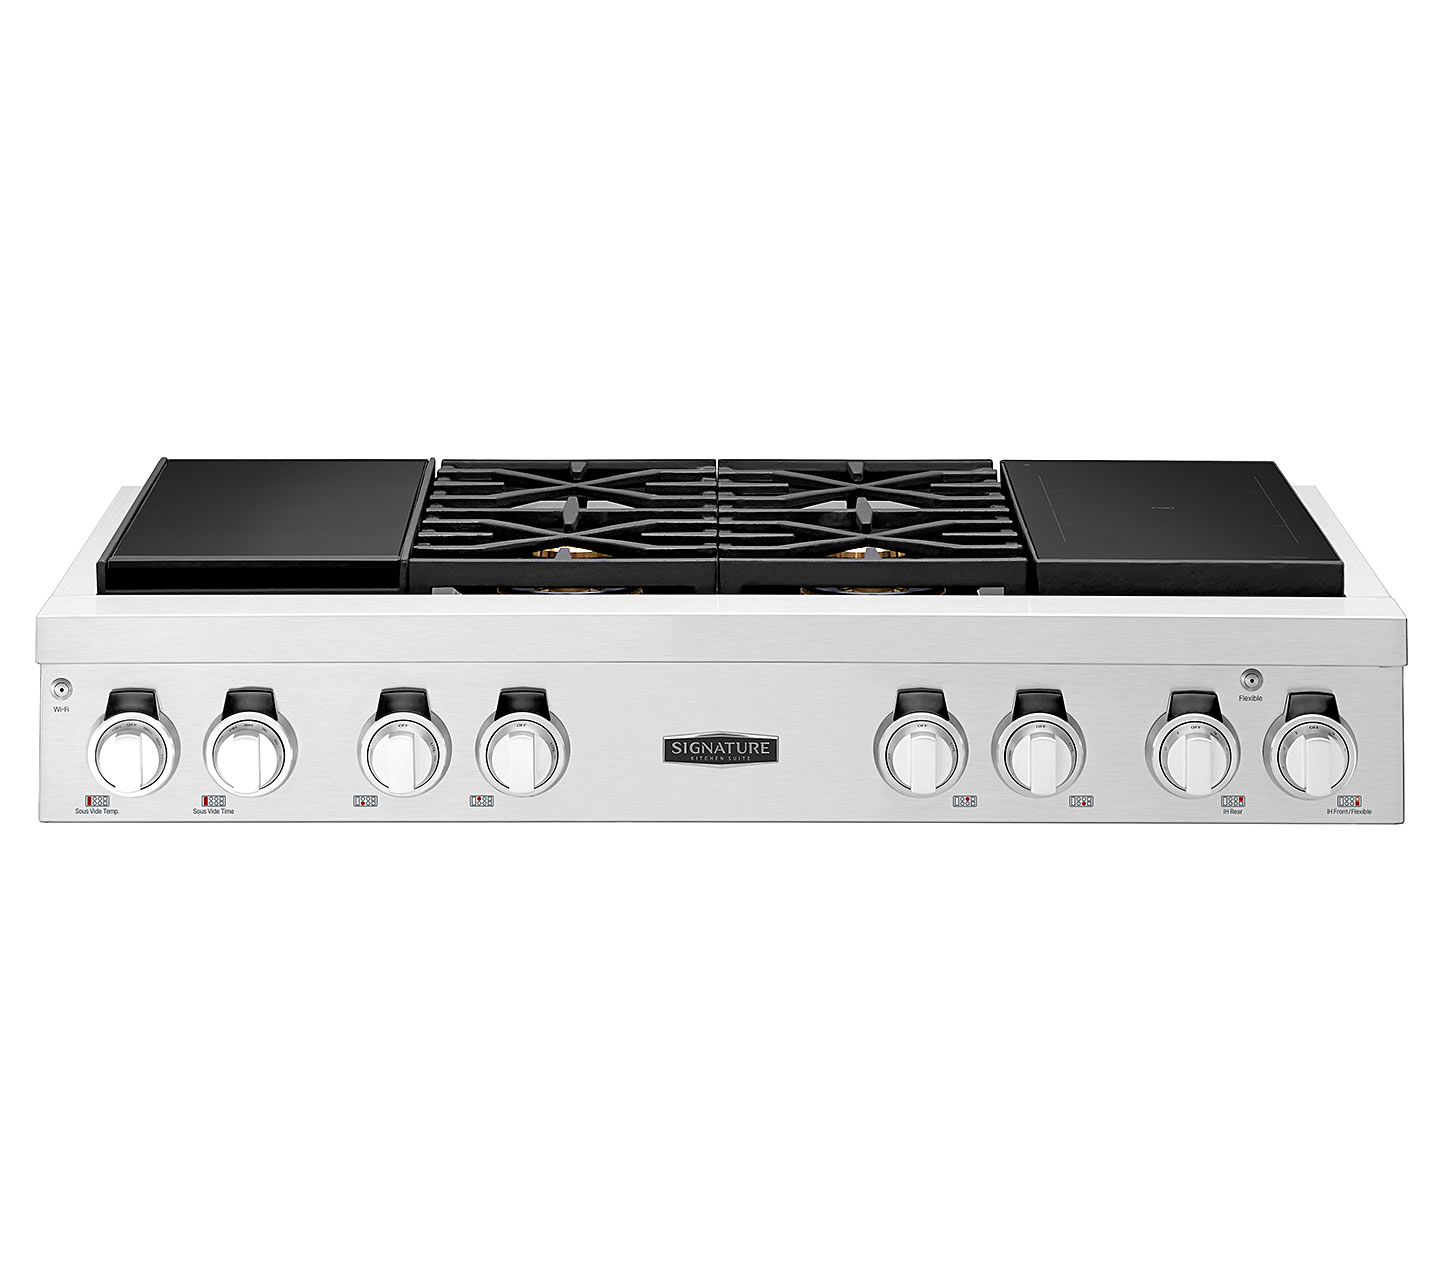 SKSRT480SIS | 48-inch Pro Rangetop with Sous Vide and Induction